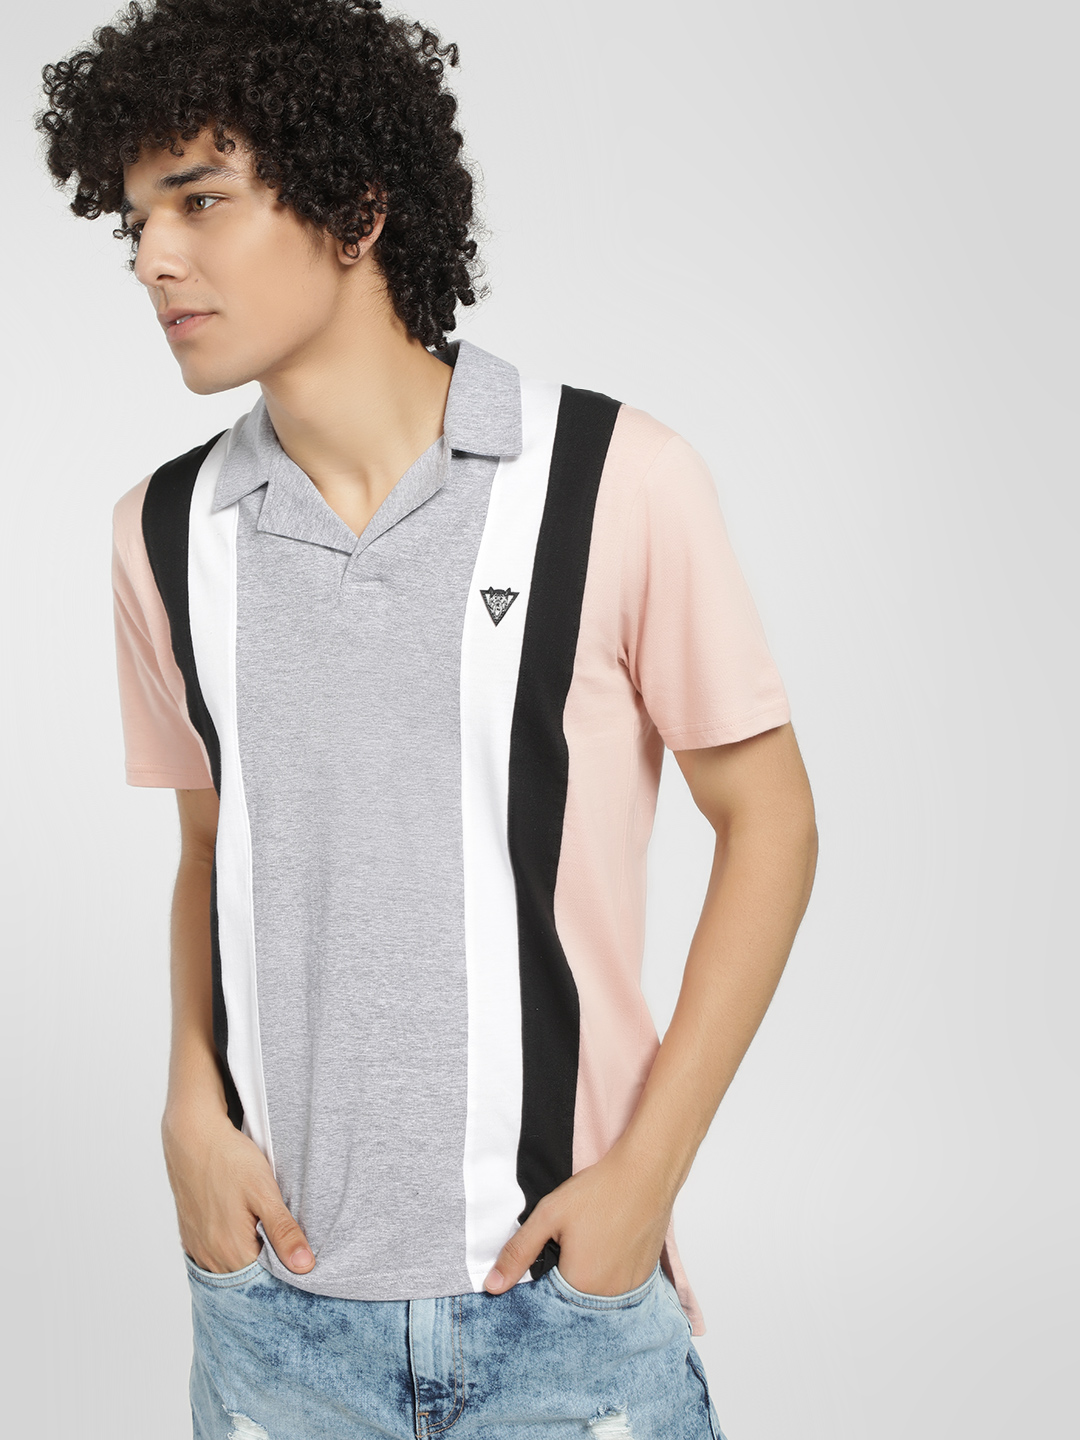 Styx & Stones Pink Vertical Stripe Colour Block Polo Shirt 1